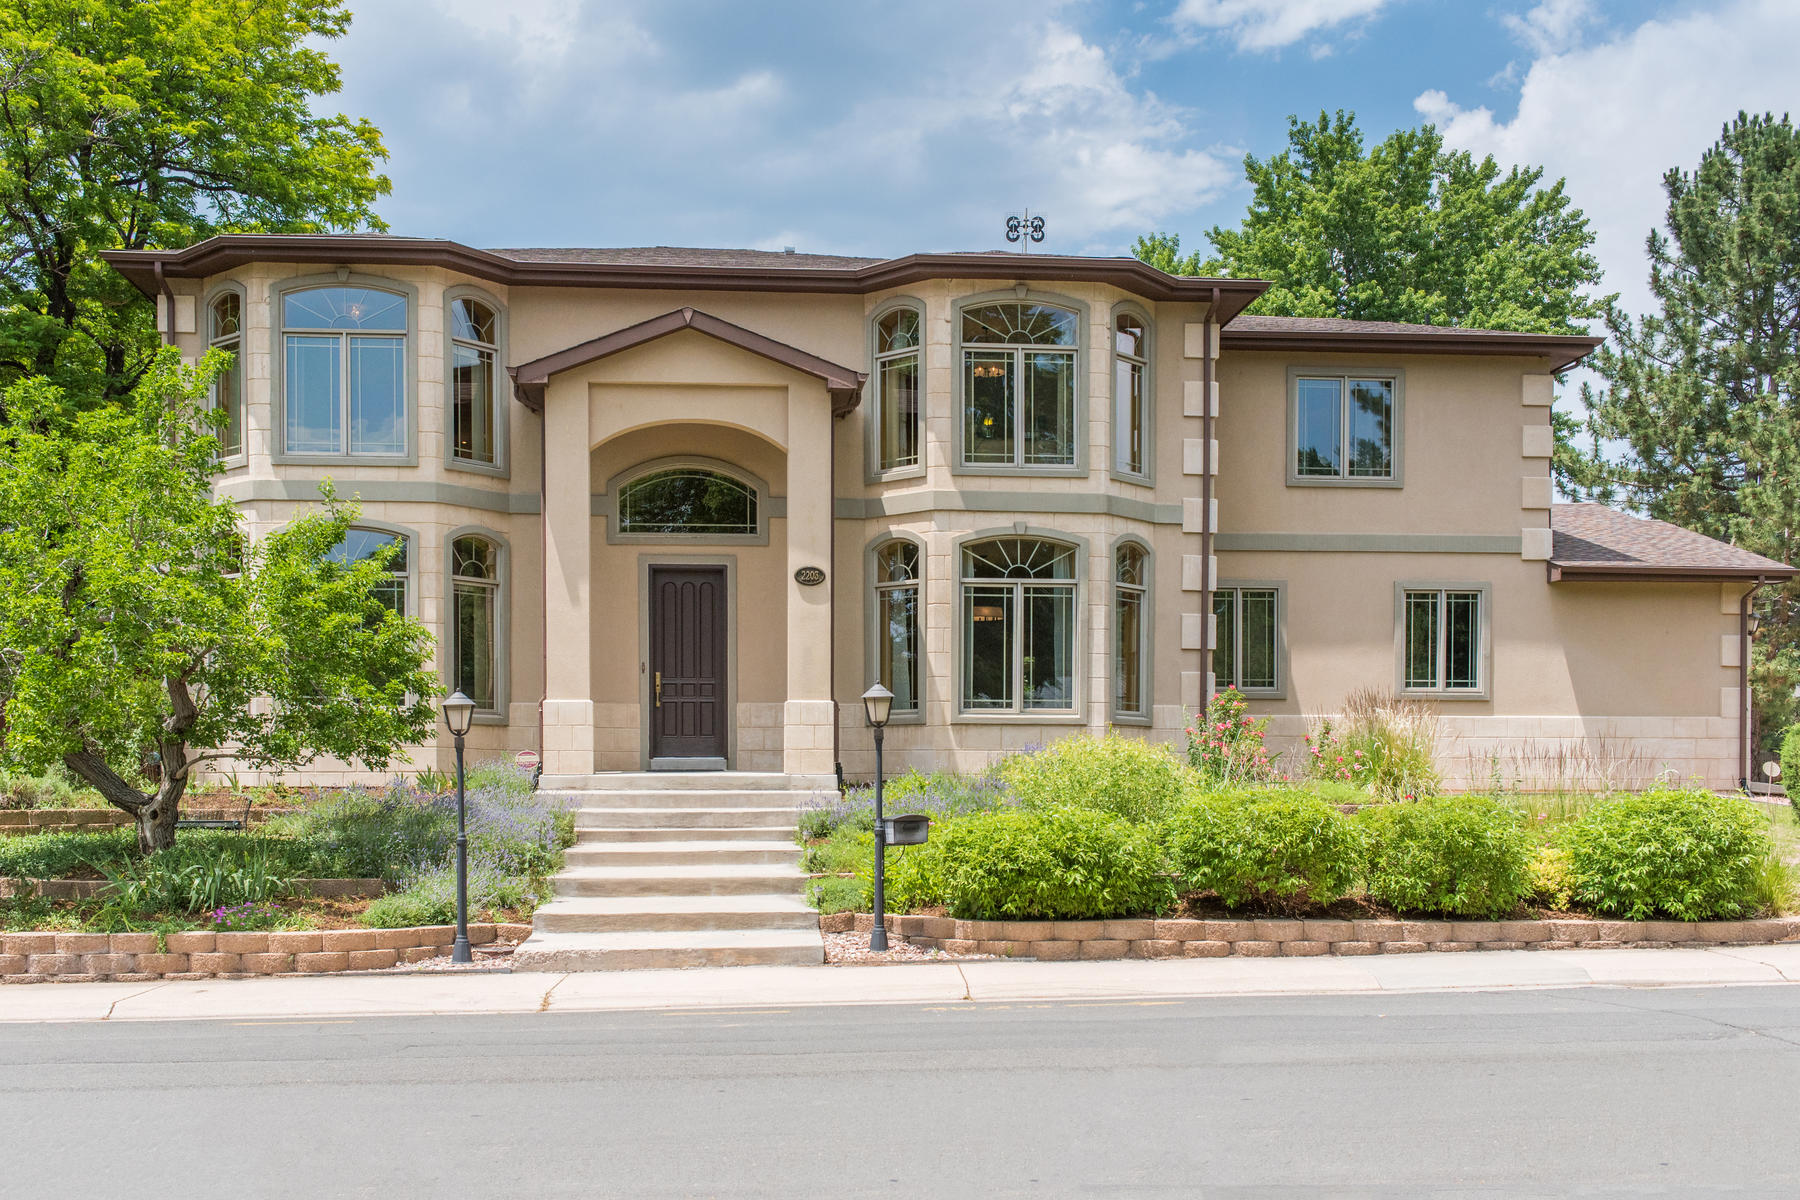 Single Family Home for Active at One-Of-A-Kind Custom Residence In Cherry Creek School District! 2203 South Dallas Street Denver, Colorado 80231 United States